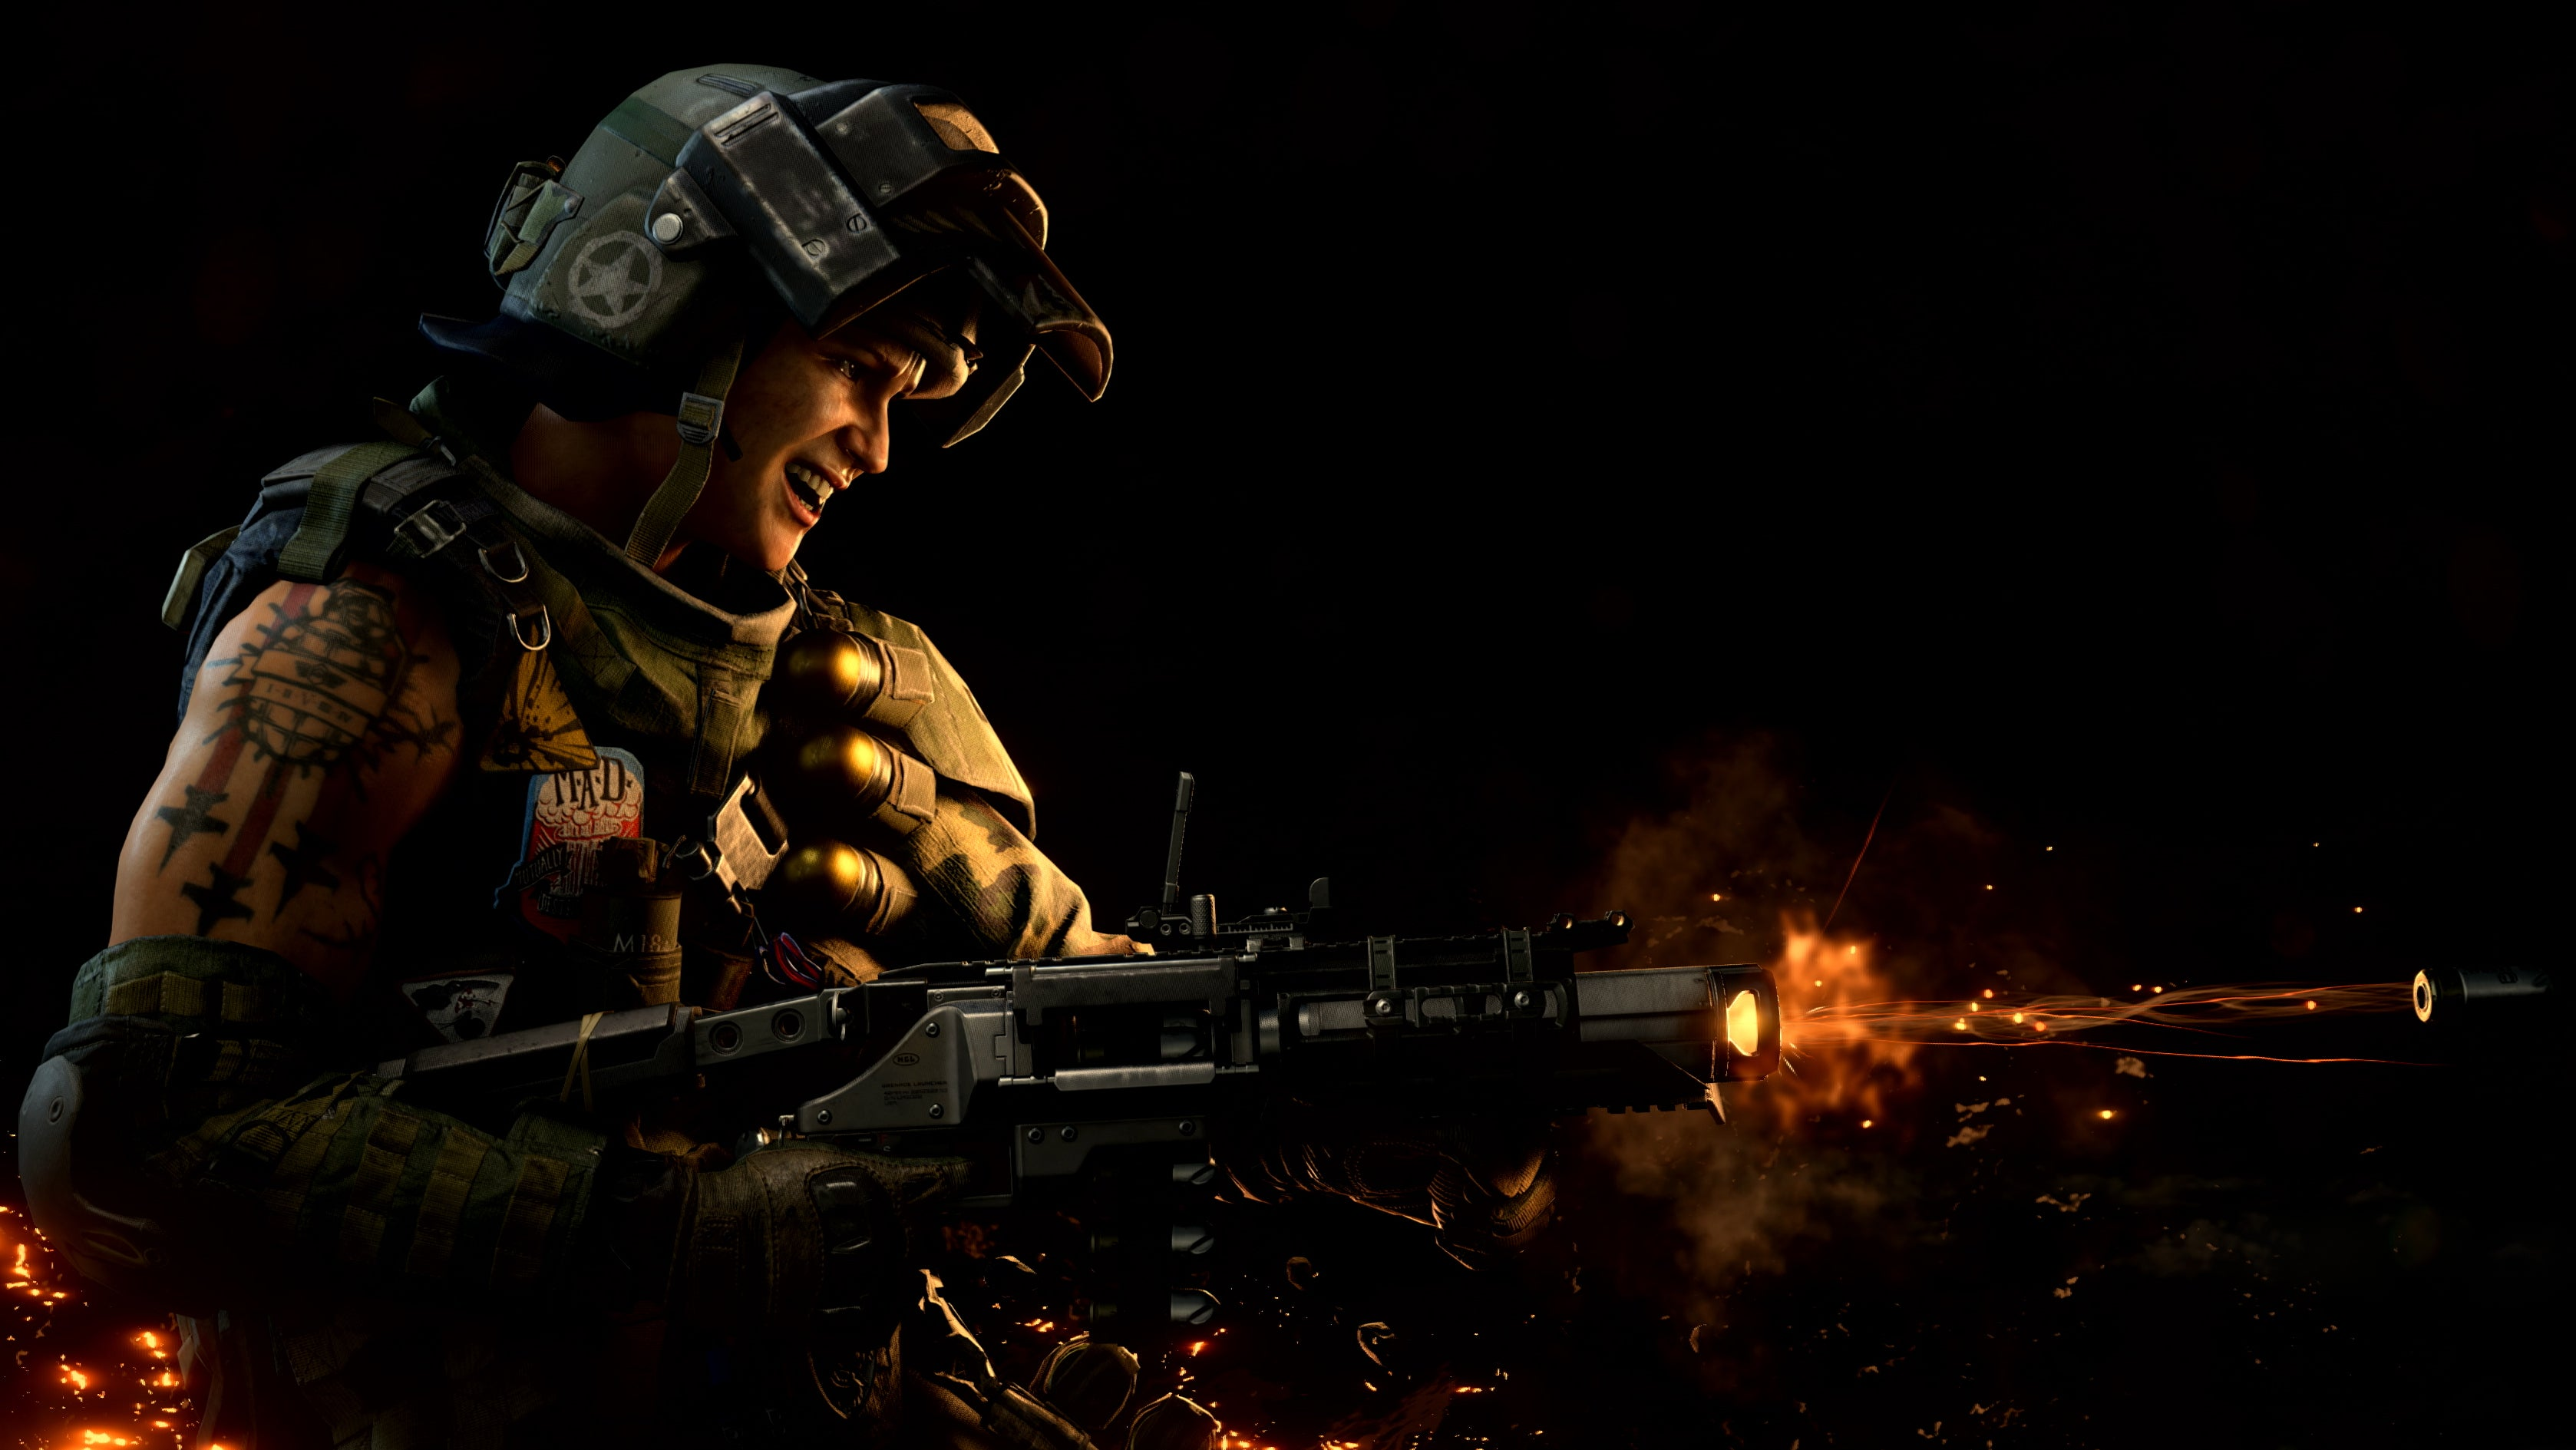 Black Ops 4 Goes Old-School With 'Barebones' Multiplayer